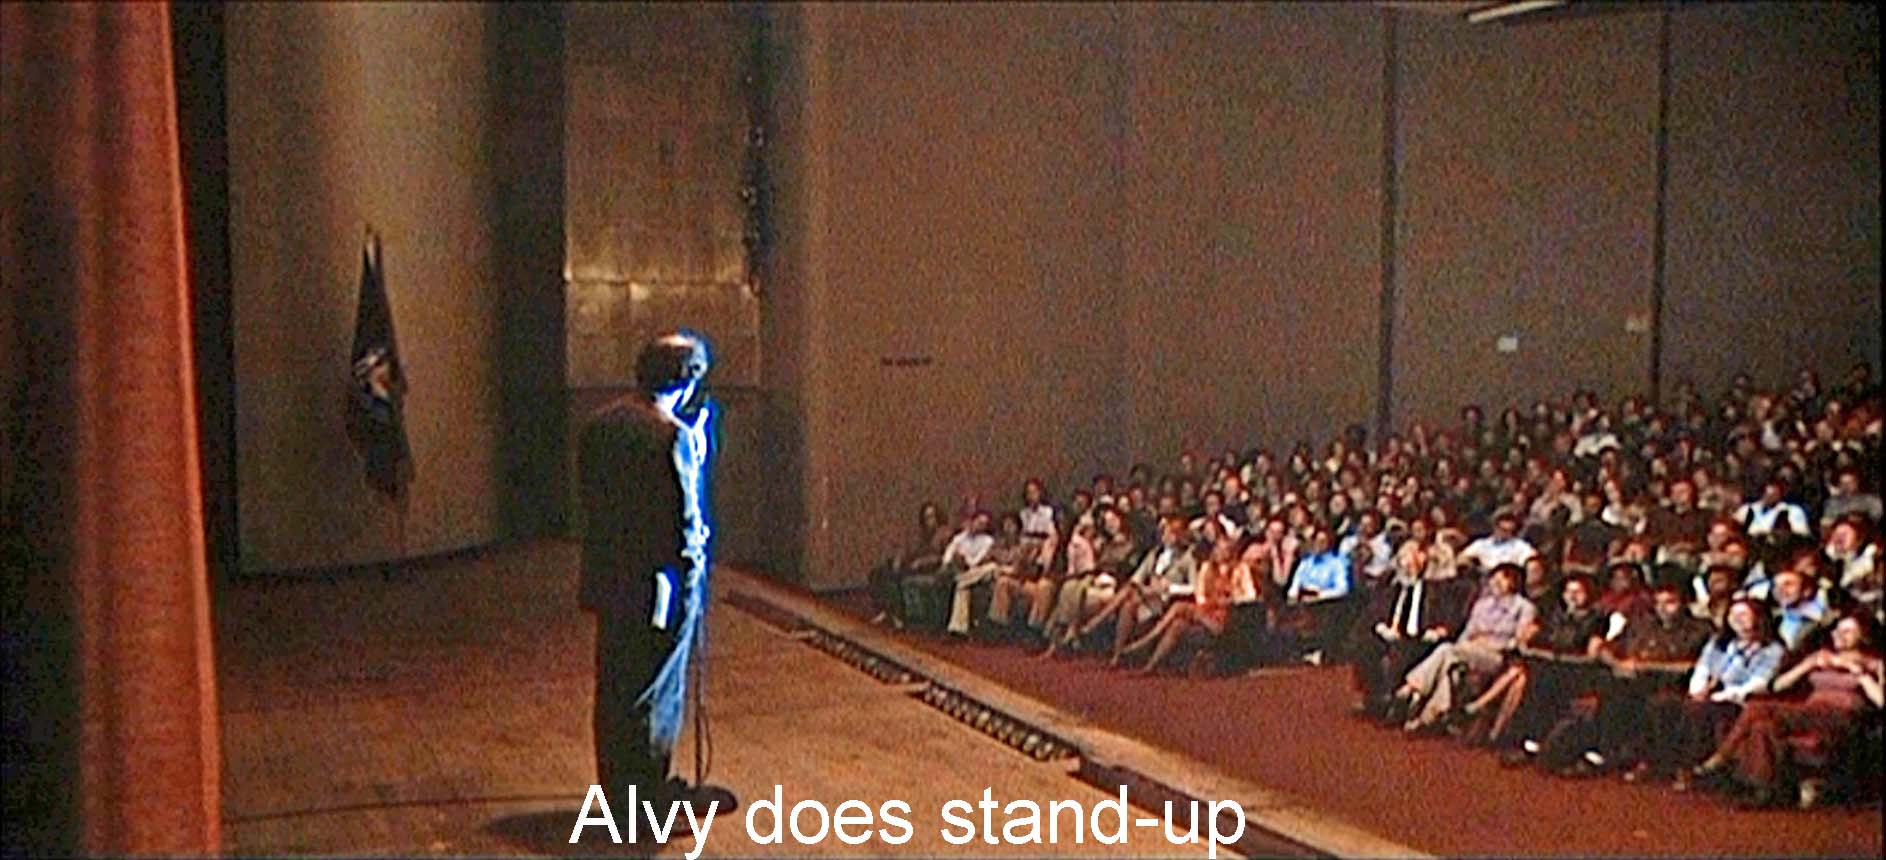 Alvy does stand-up